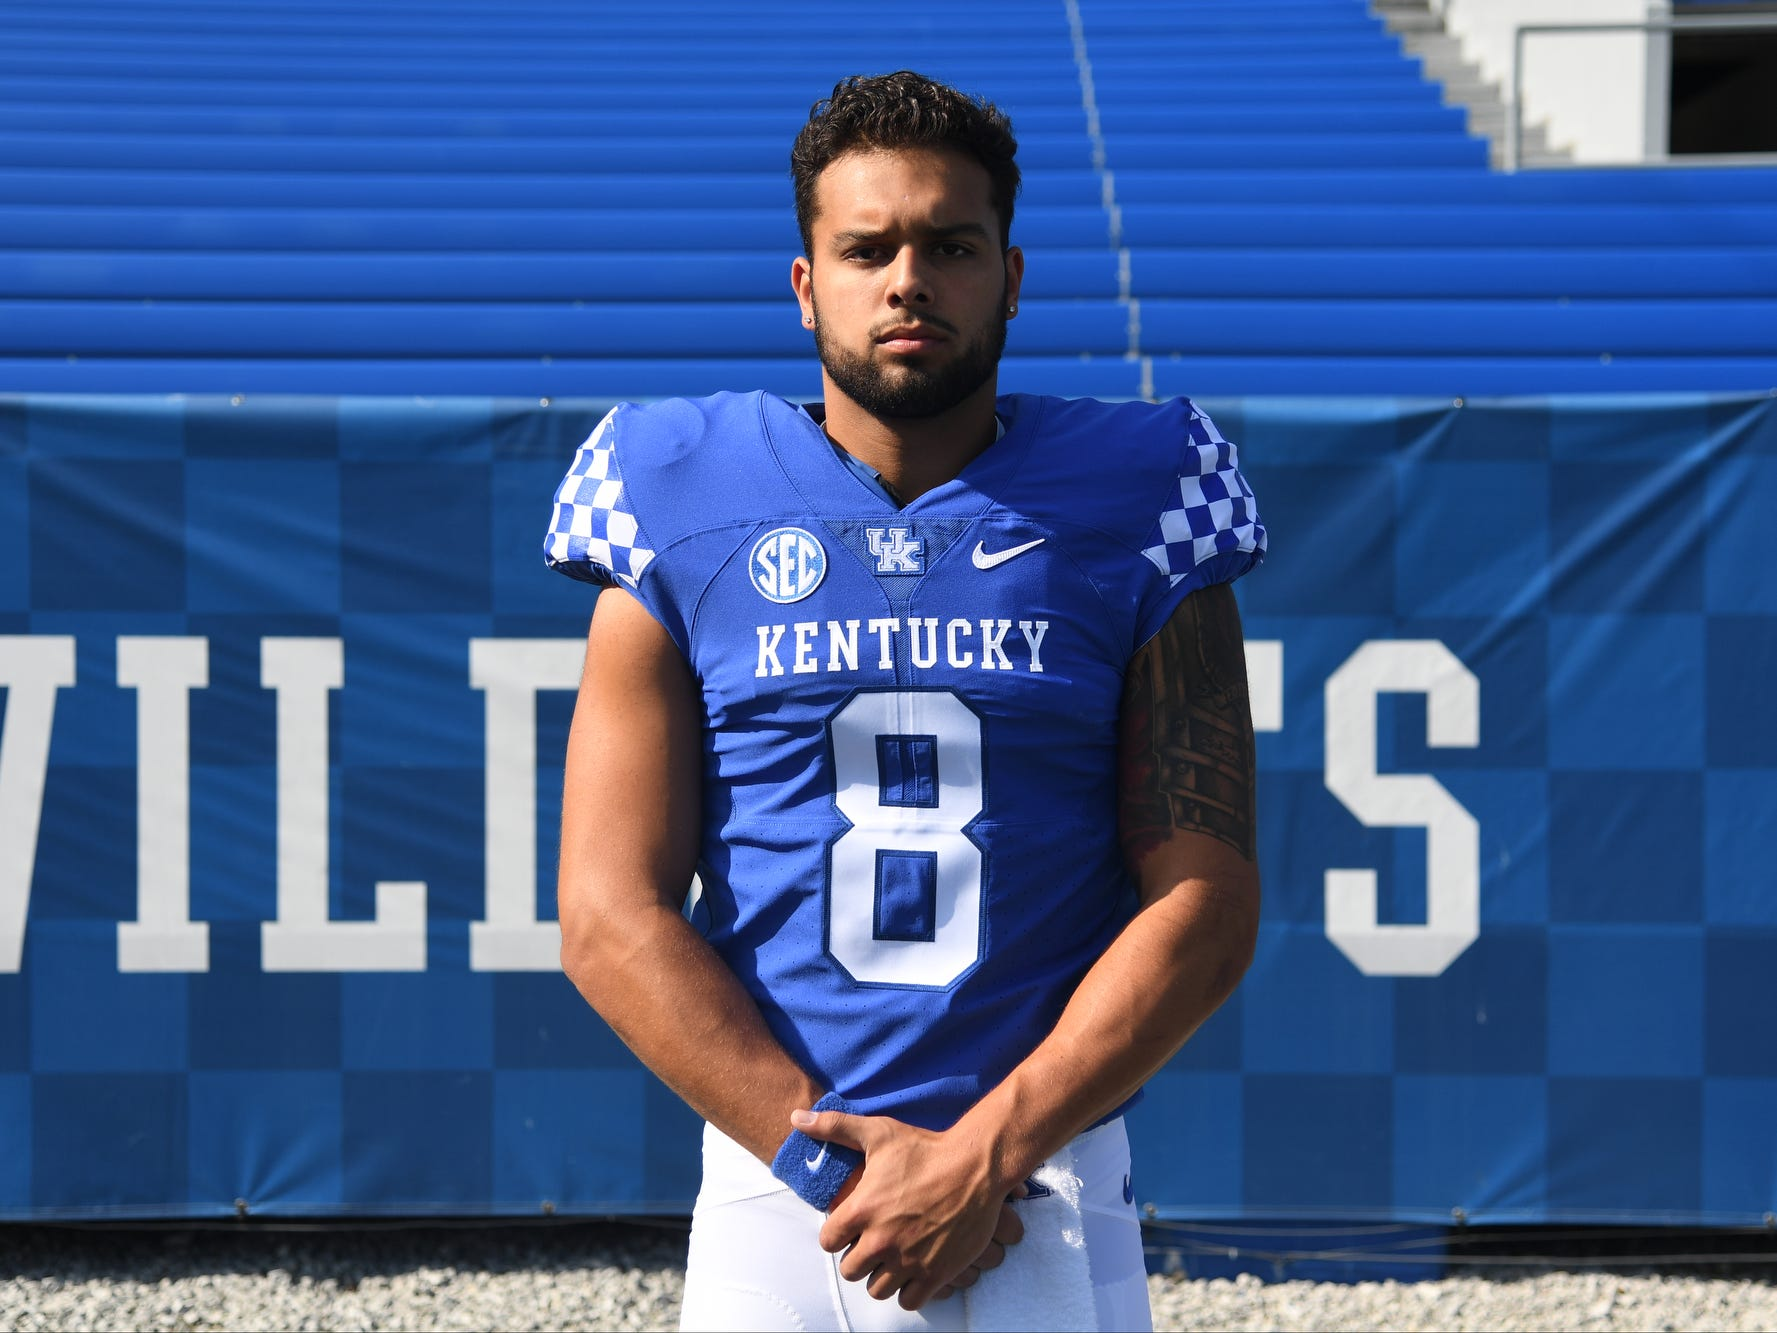 QB Danny Clark during the UK football media day at Kroger Filed in Lexington, Kentucky on Friday, August 3, 2018.